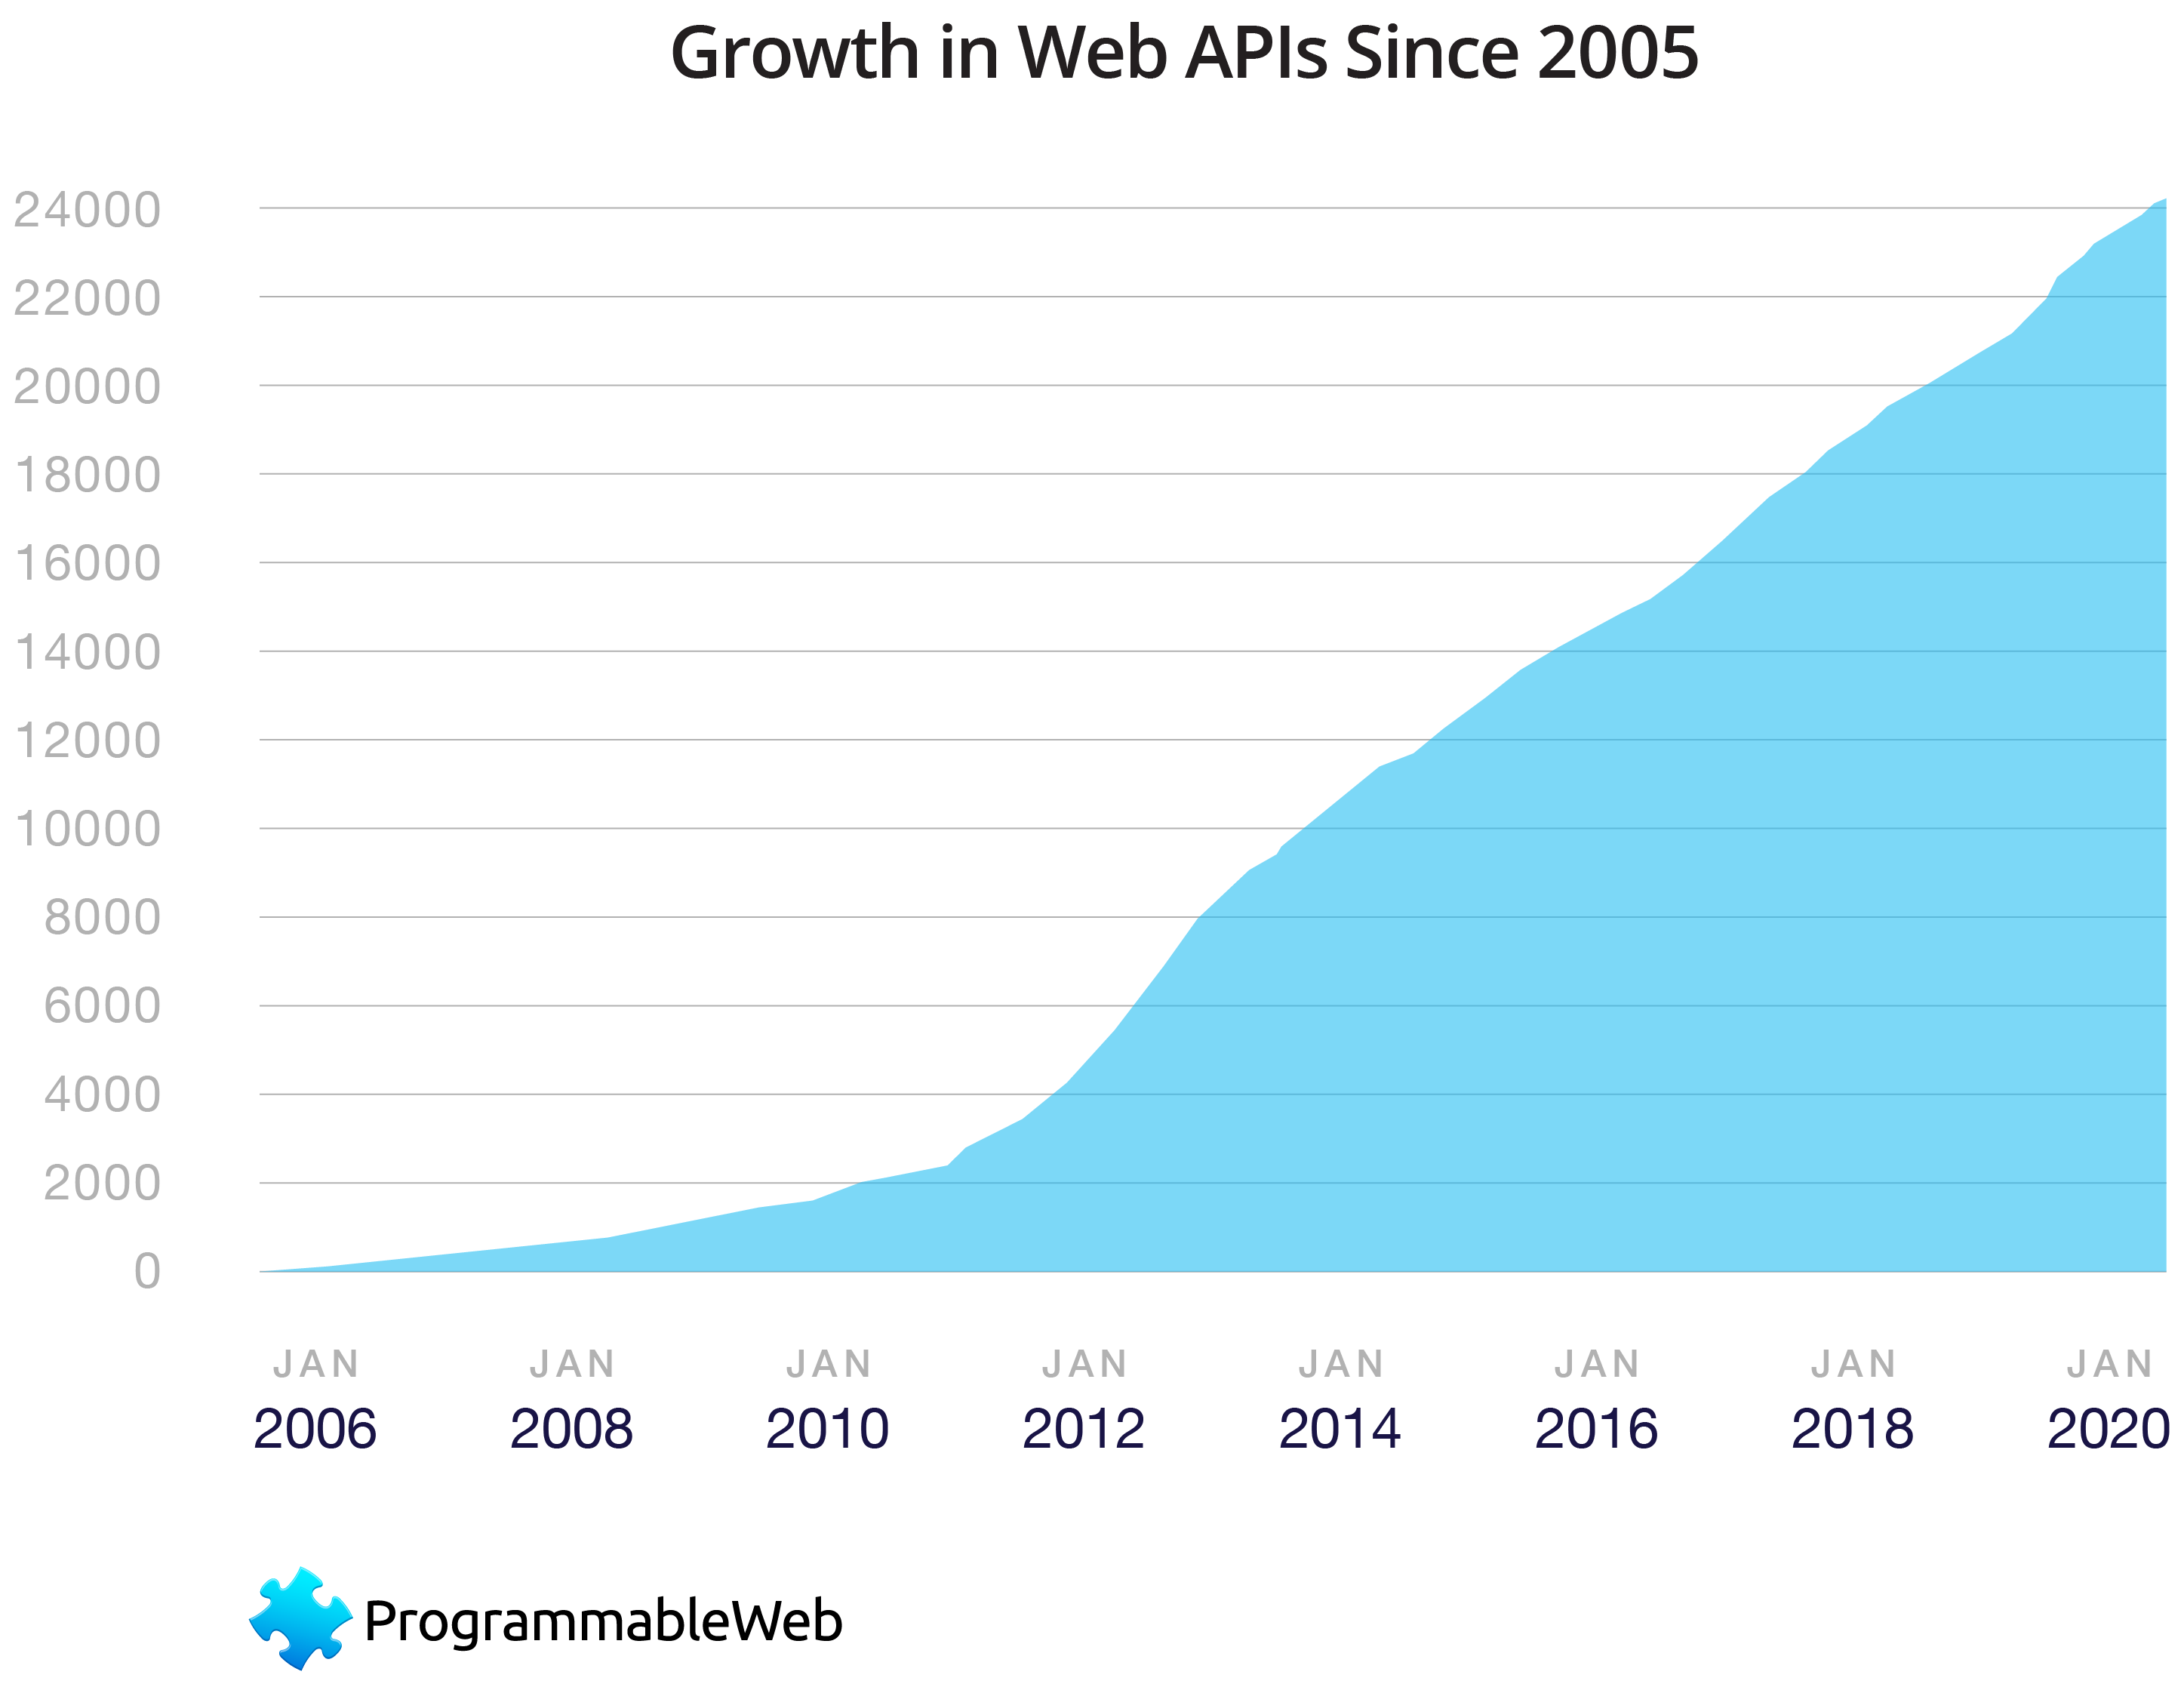 A graph showing the growth of the ProgrammableWeb API directory since 2006. The graph shows a surge in APIs created between December 2010 and December 2020.